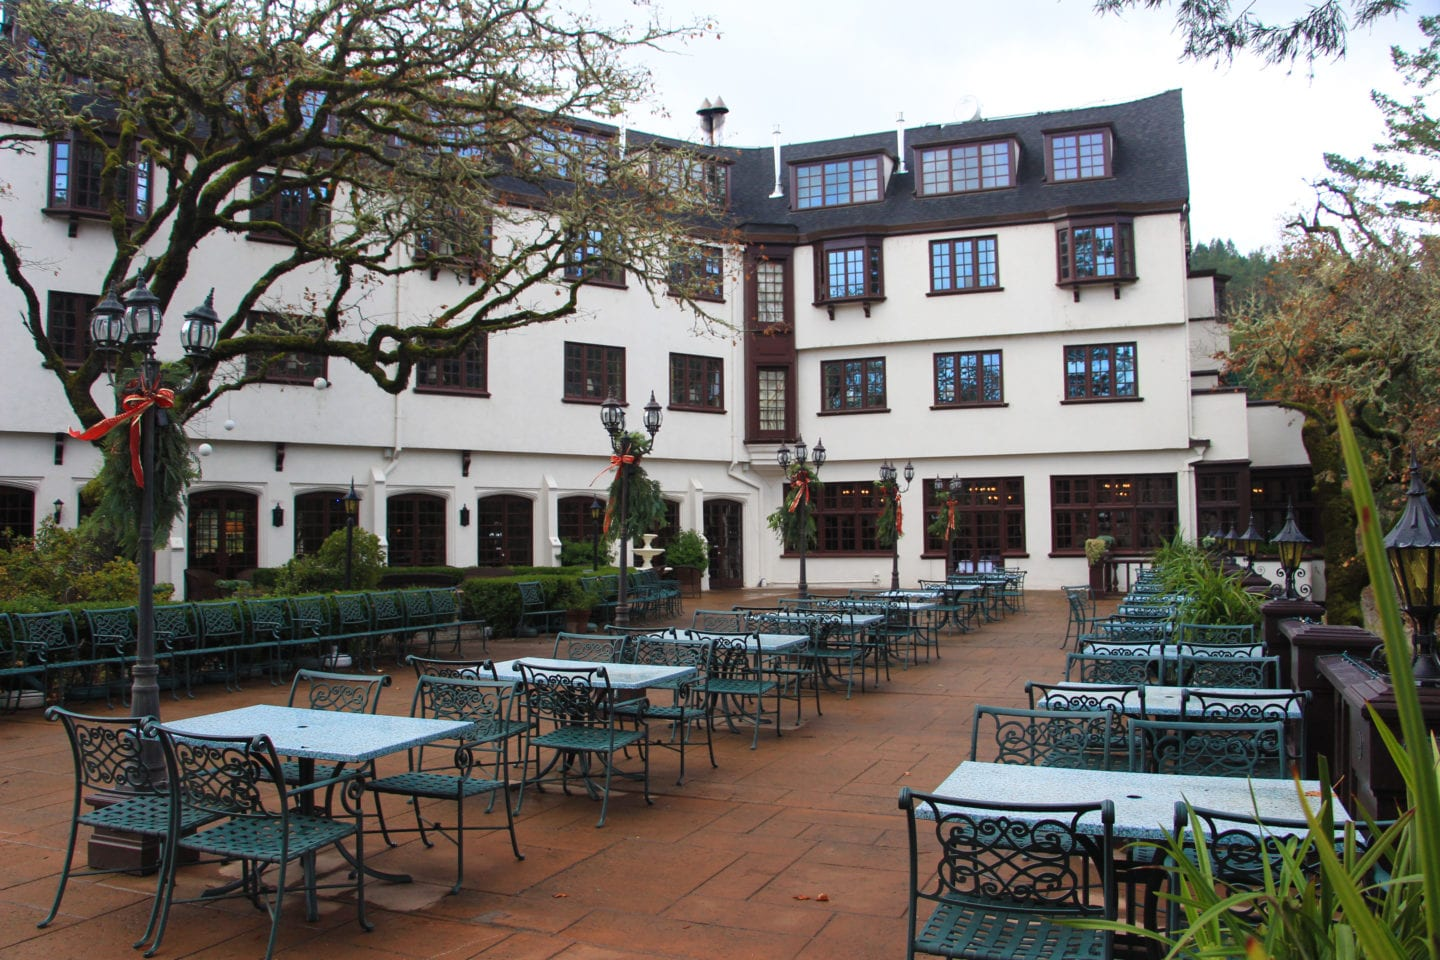 The terrace at the Benbow Historic Inn